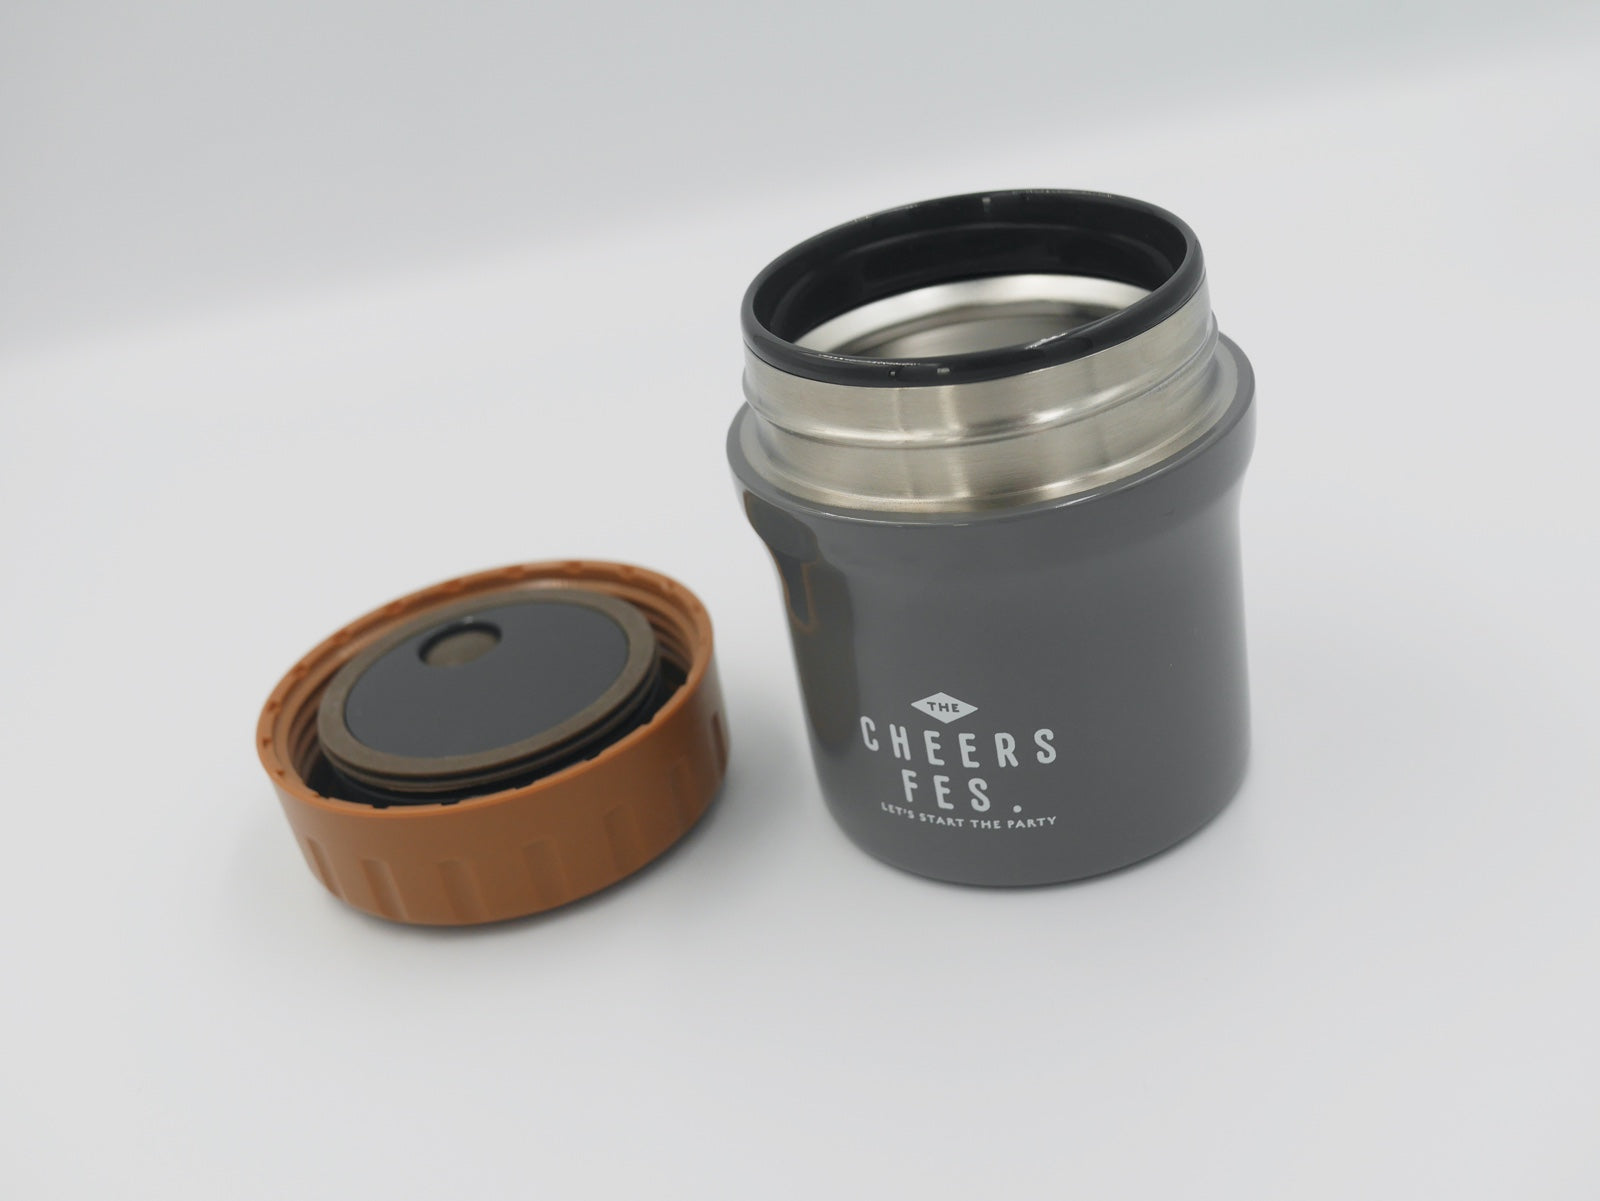 Cheers Fes Stainless Steel Soup Pot | Grey